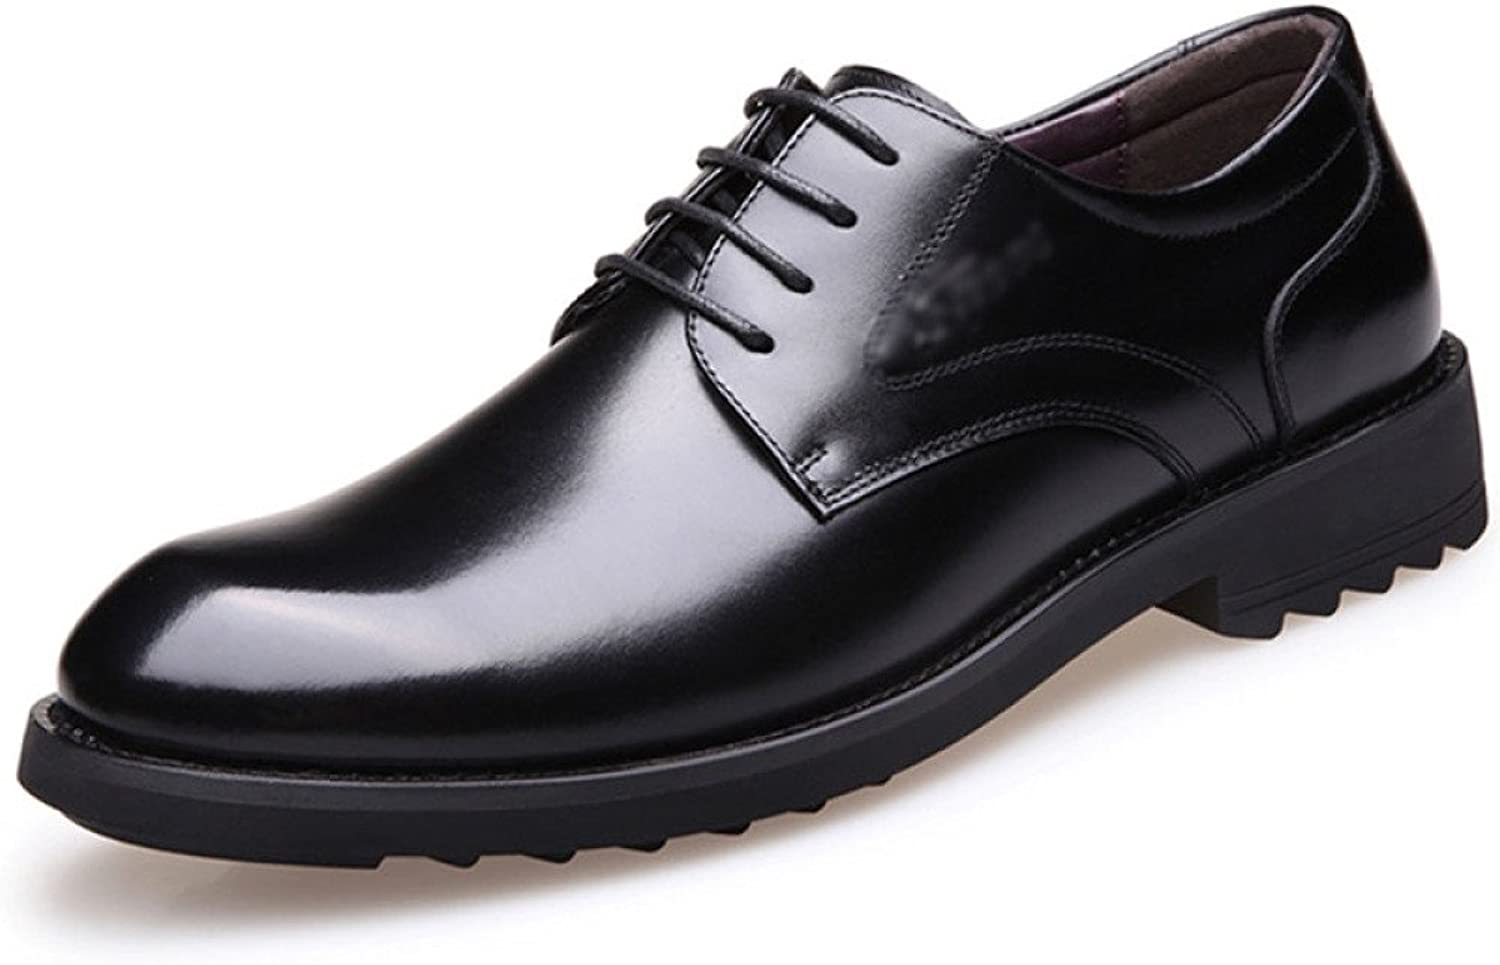 ZHMIAO Leather shoes For Men's Mens Spring And Autumn Business Formal Wear Leather shoes Flat With Lace-ups Low Help Derby shoes